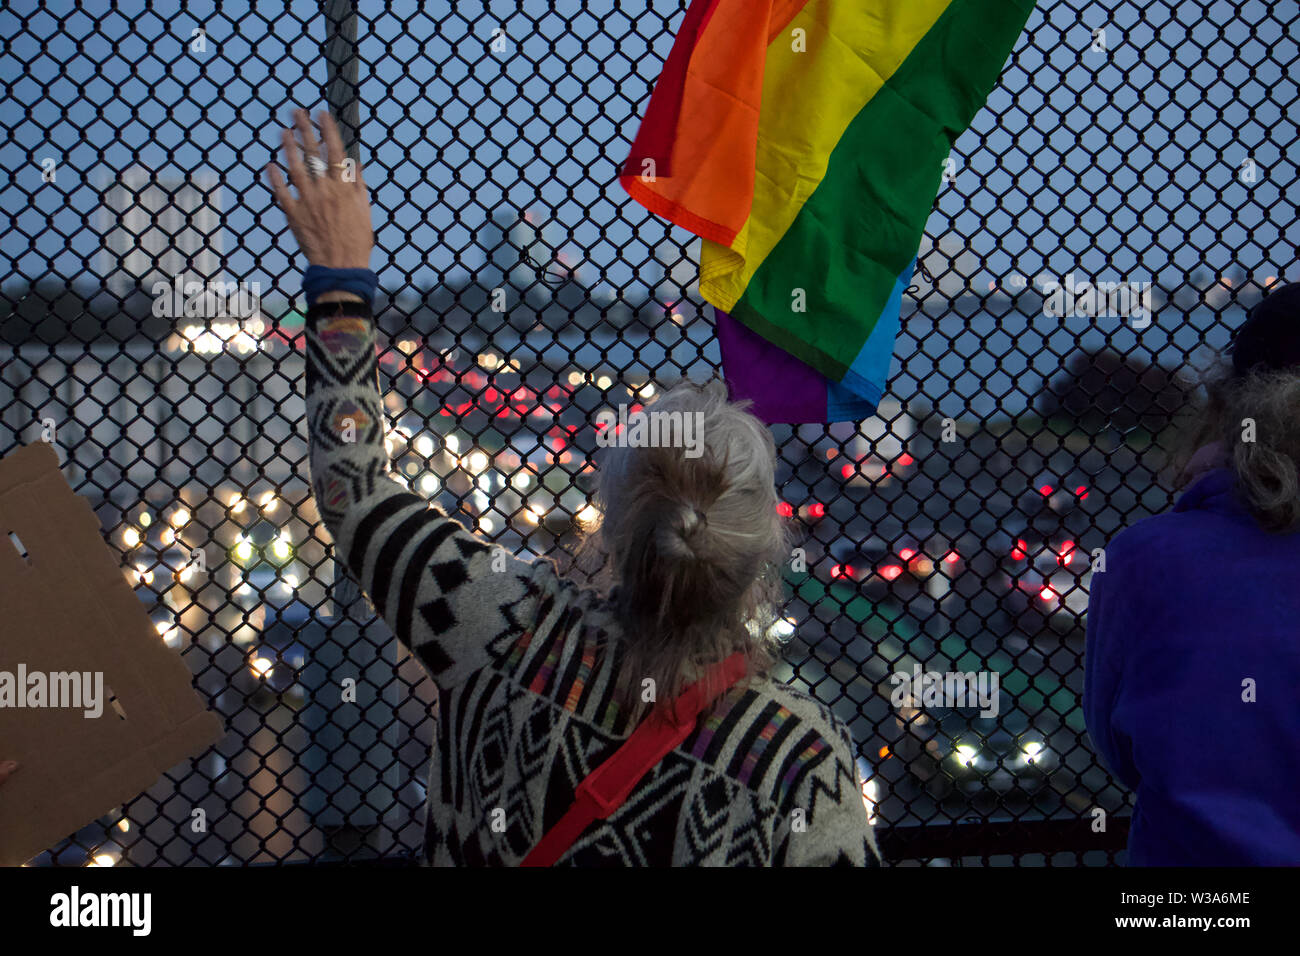 Protestor on the Berkeley Pedestrian Bridge over Highway 80, looking south, as part of the Lights For Liberty vigil to protest US detention camps. Stock Photo